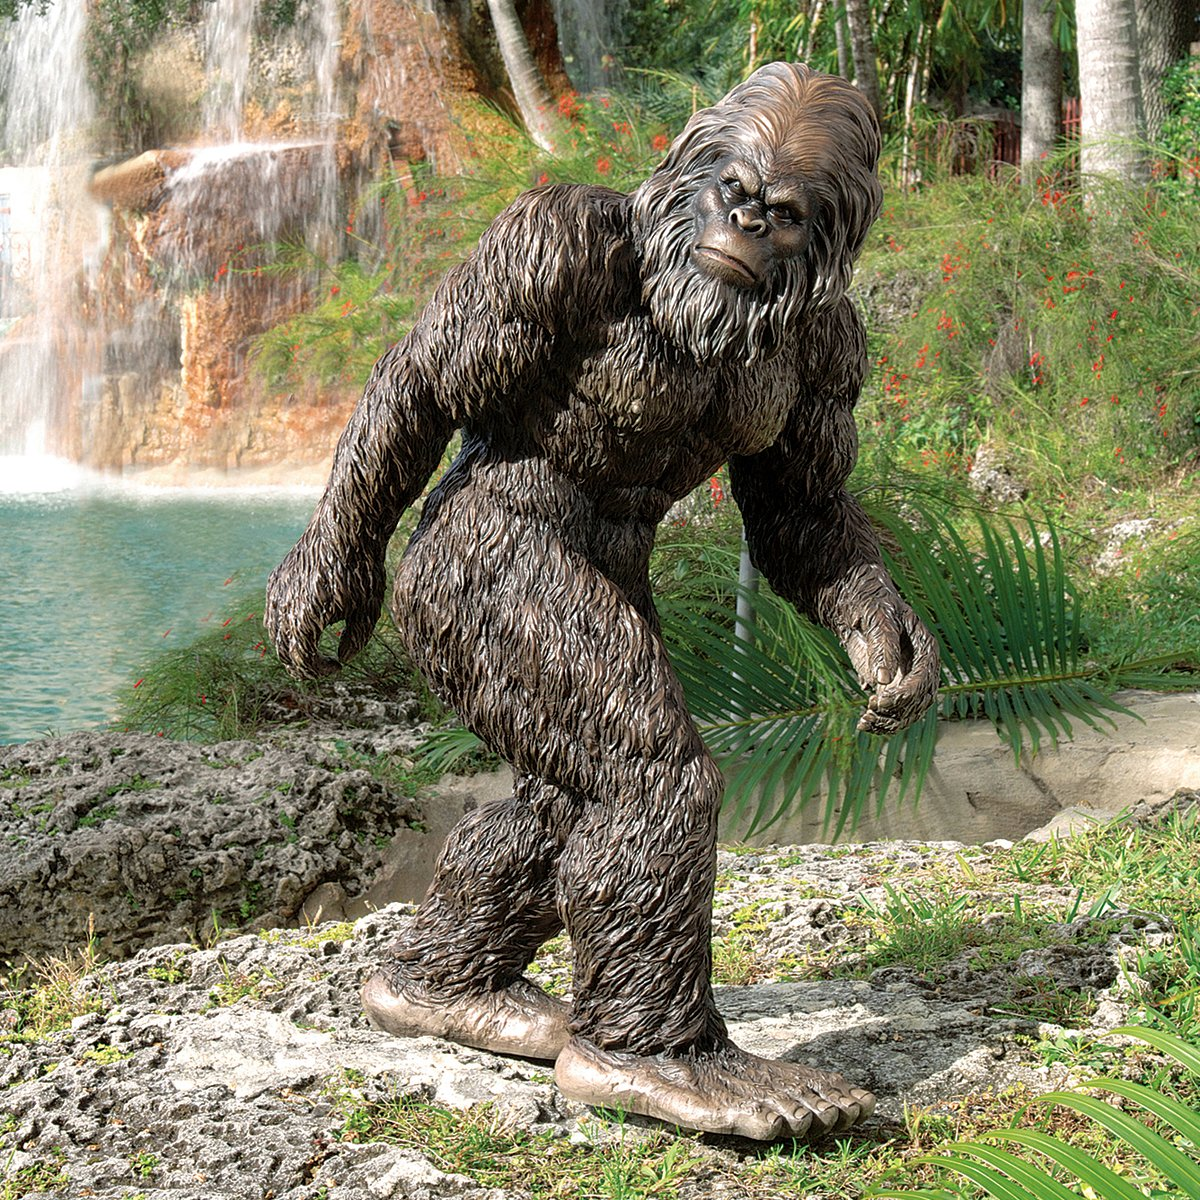 Yowie - Beware the Australian Bigfoot!